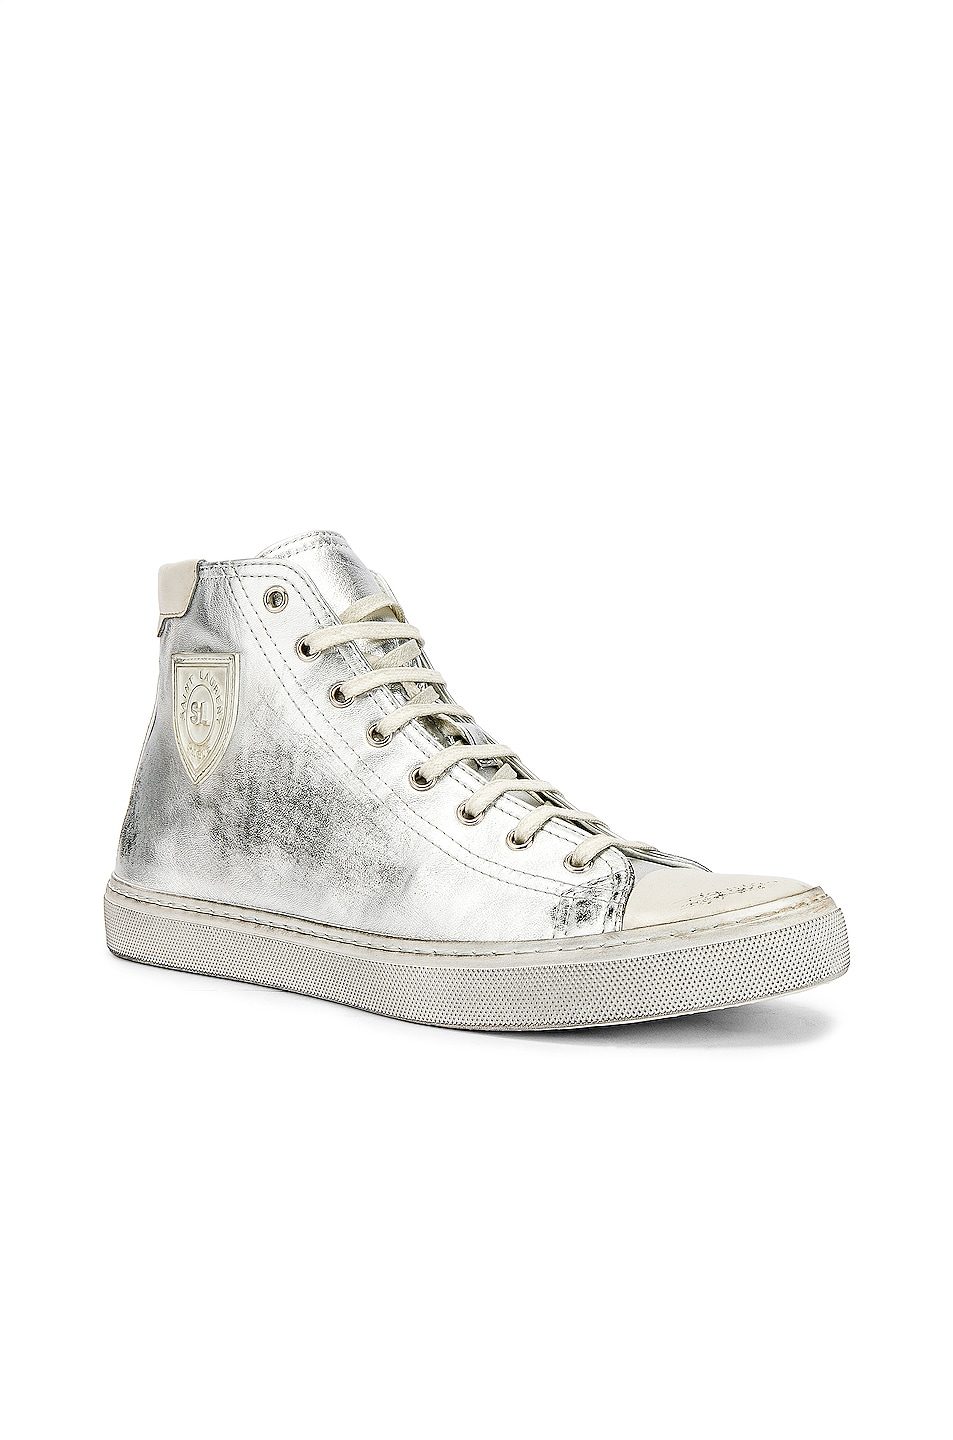 Image 2 of Saint Laurent Bedford Hi-Tops in Silver & White